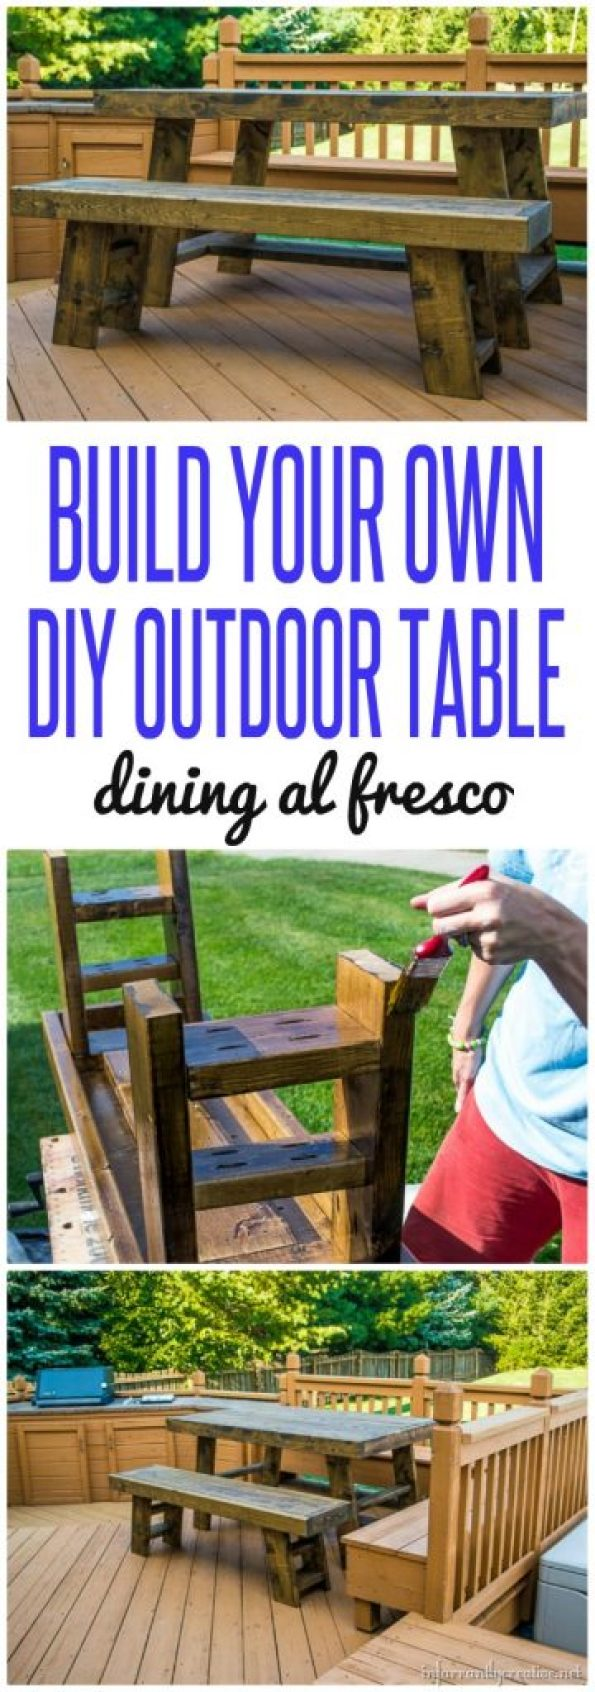 build-your-own-outdoor-table